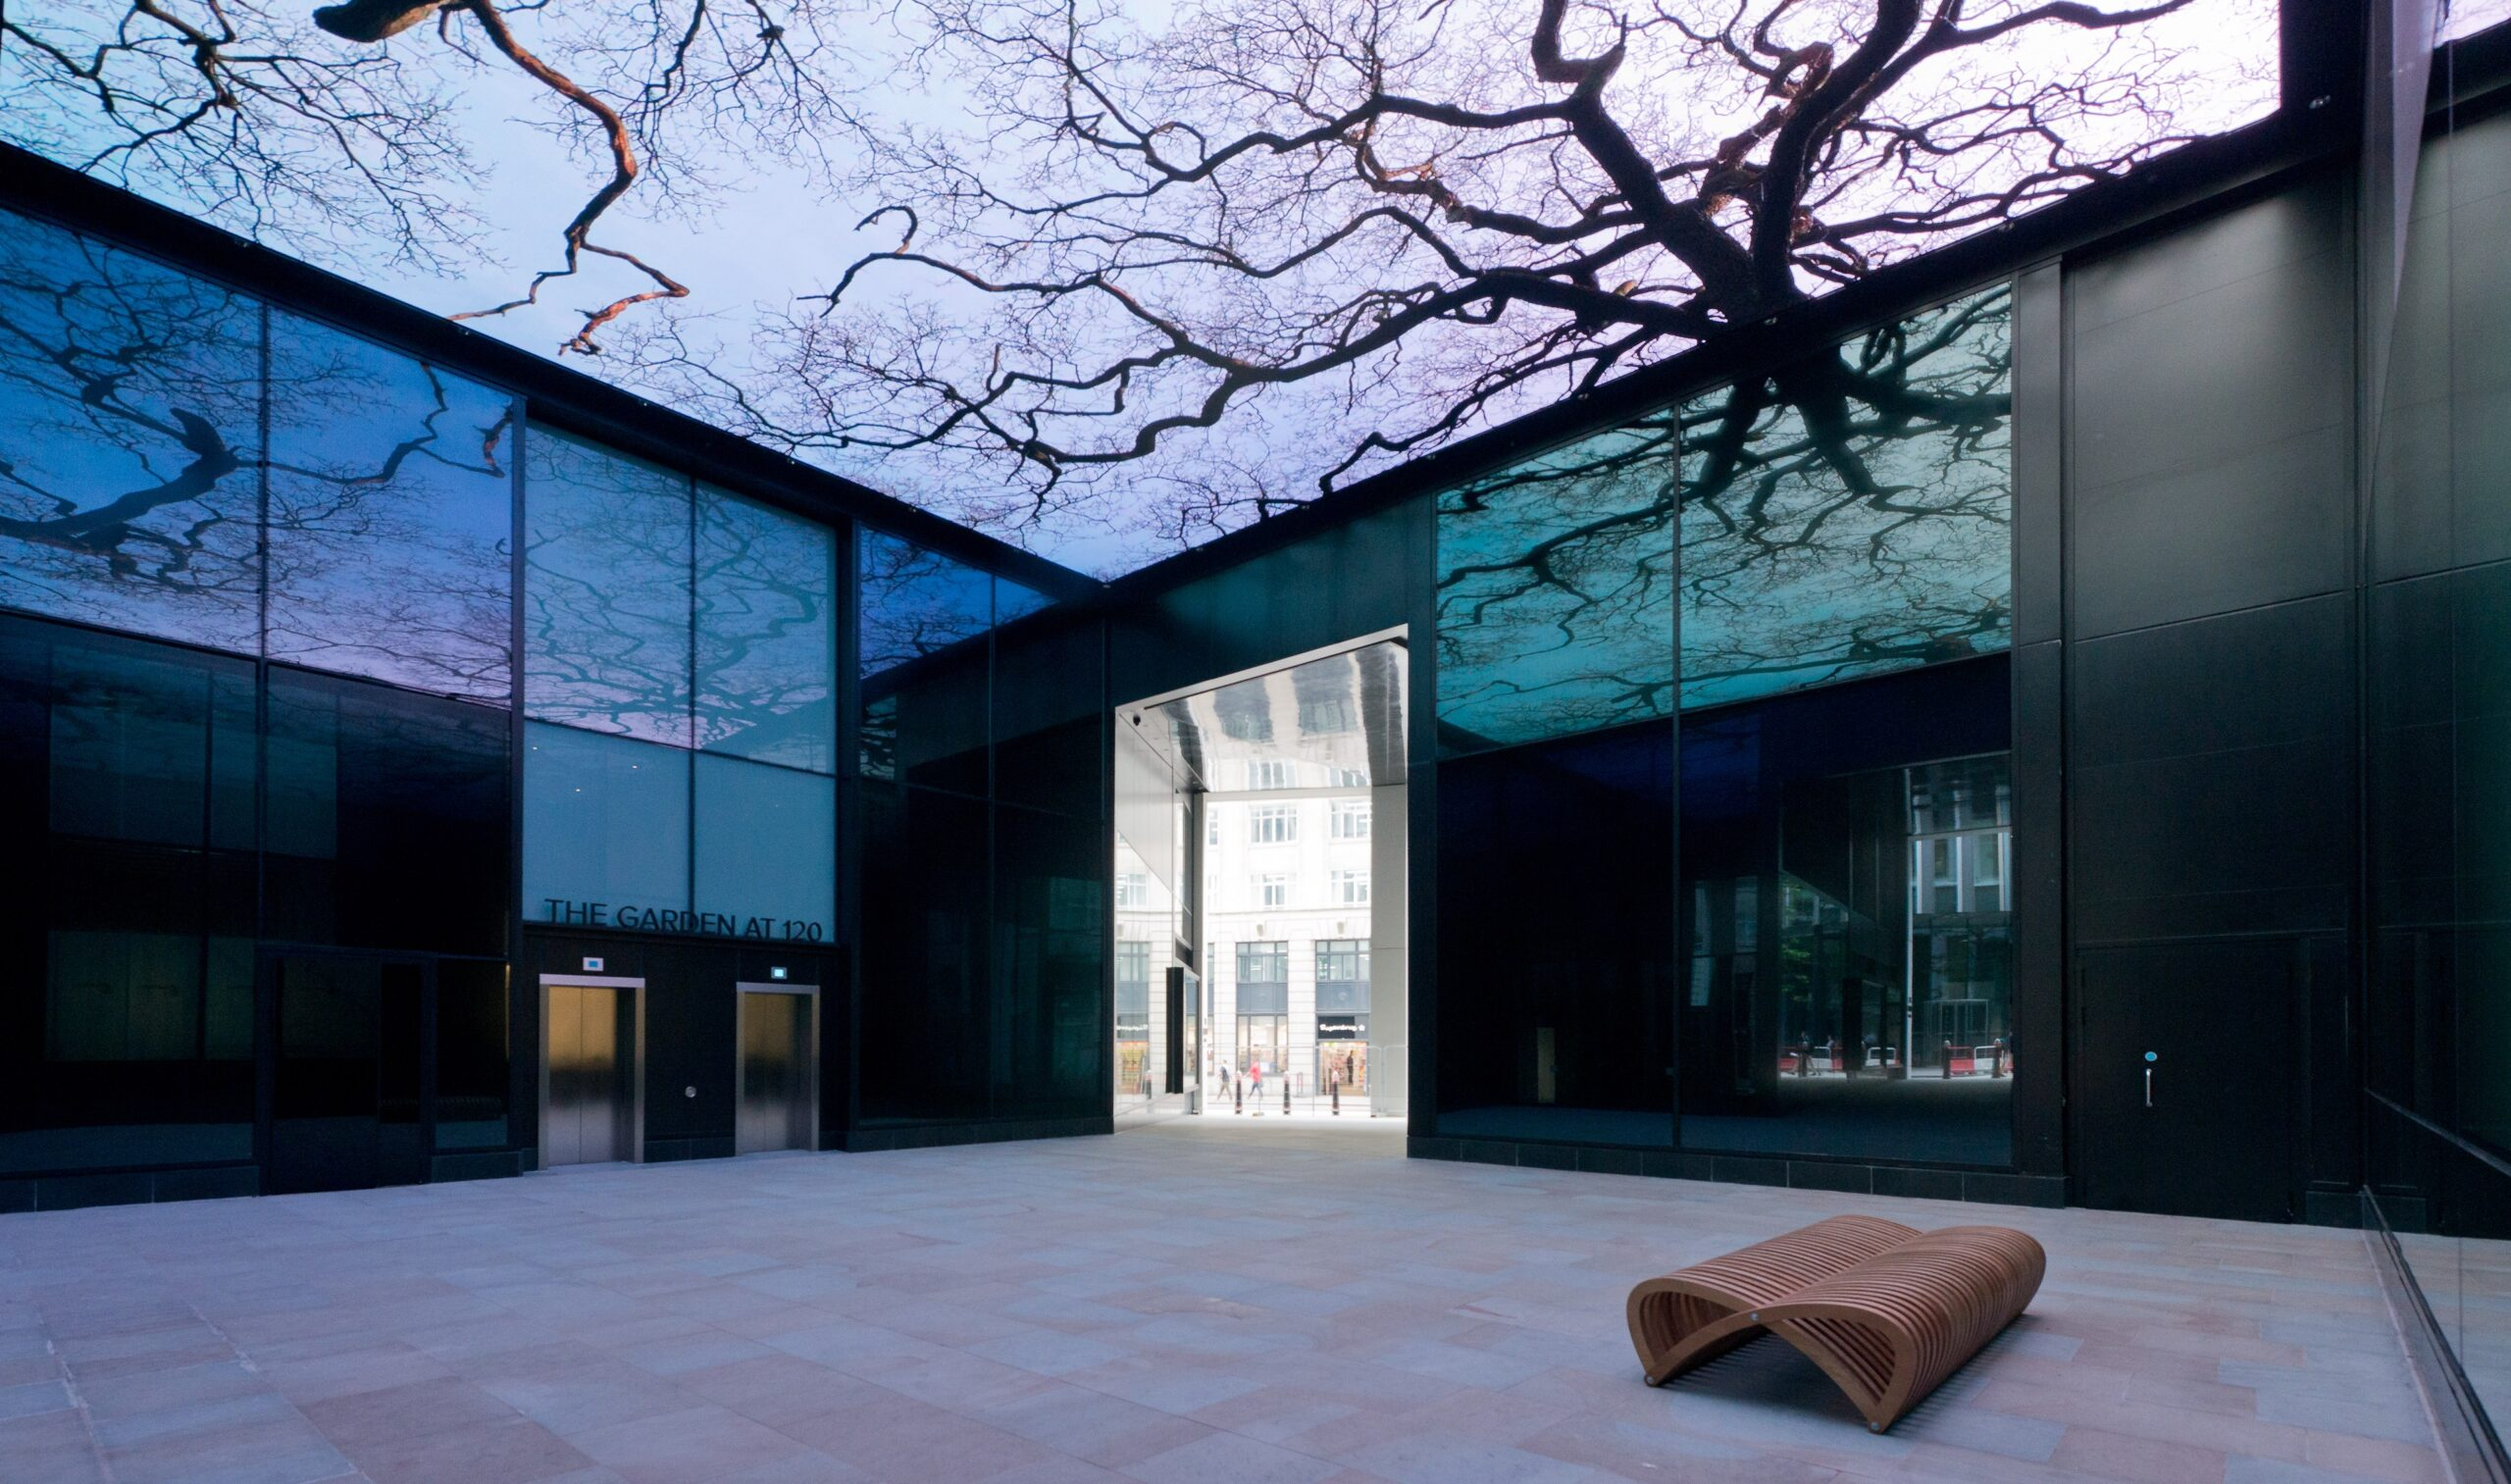 April 2021 'The Call of Things', Fen Court, 10 Fenchurch Ave, London